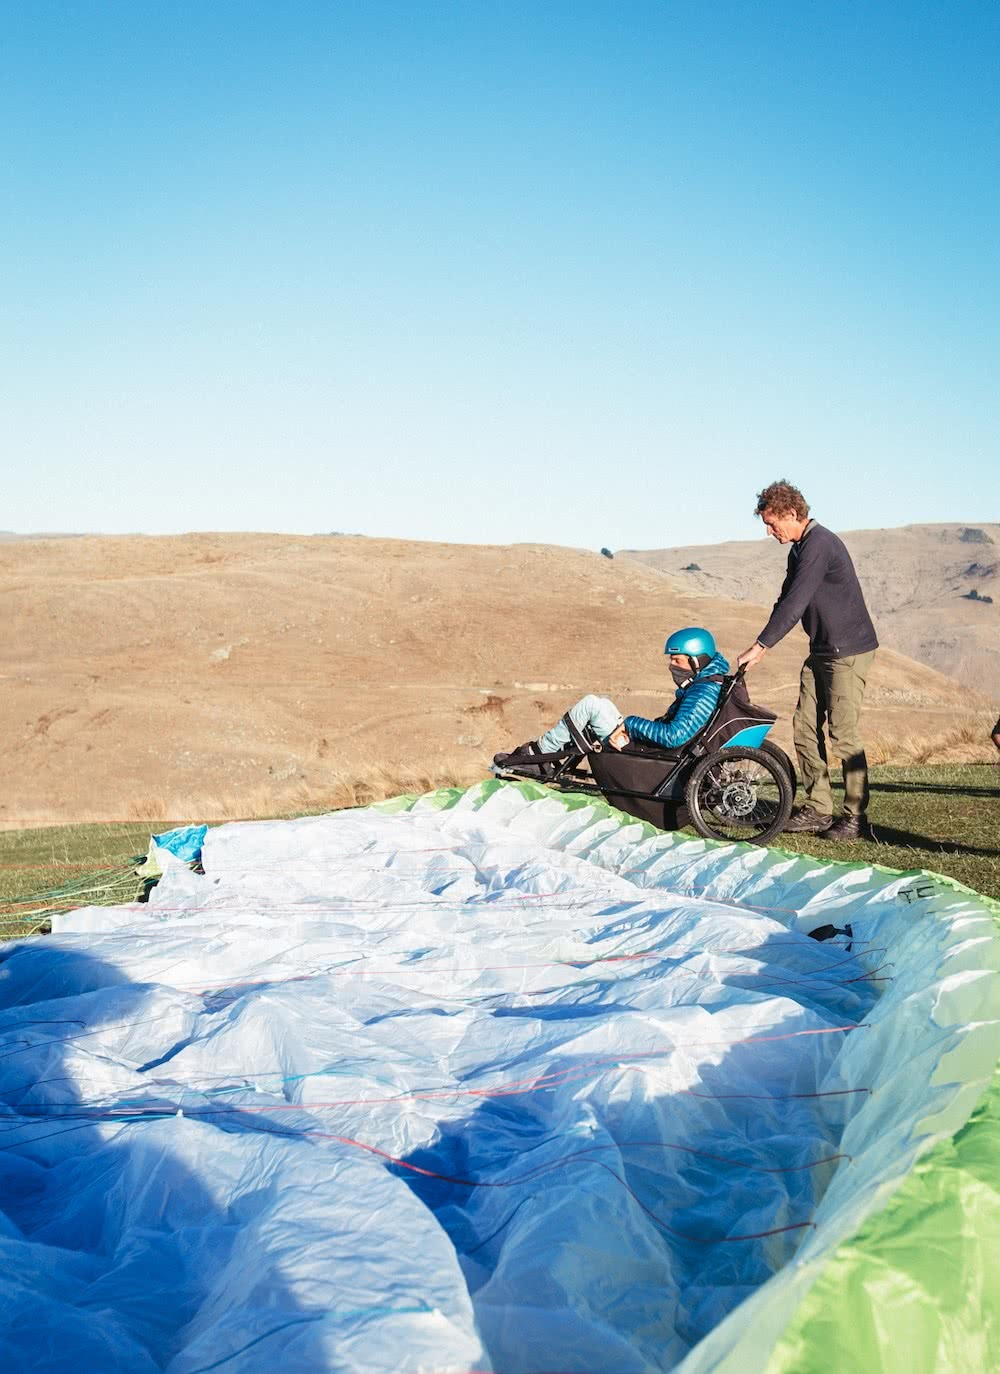 Paragliding Tetraplegic Jezza Williams Proves There Are No Limits, paragliding, carers, Jezza, parachute